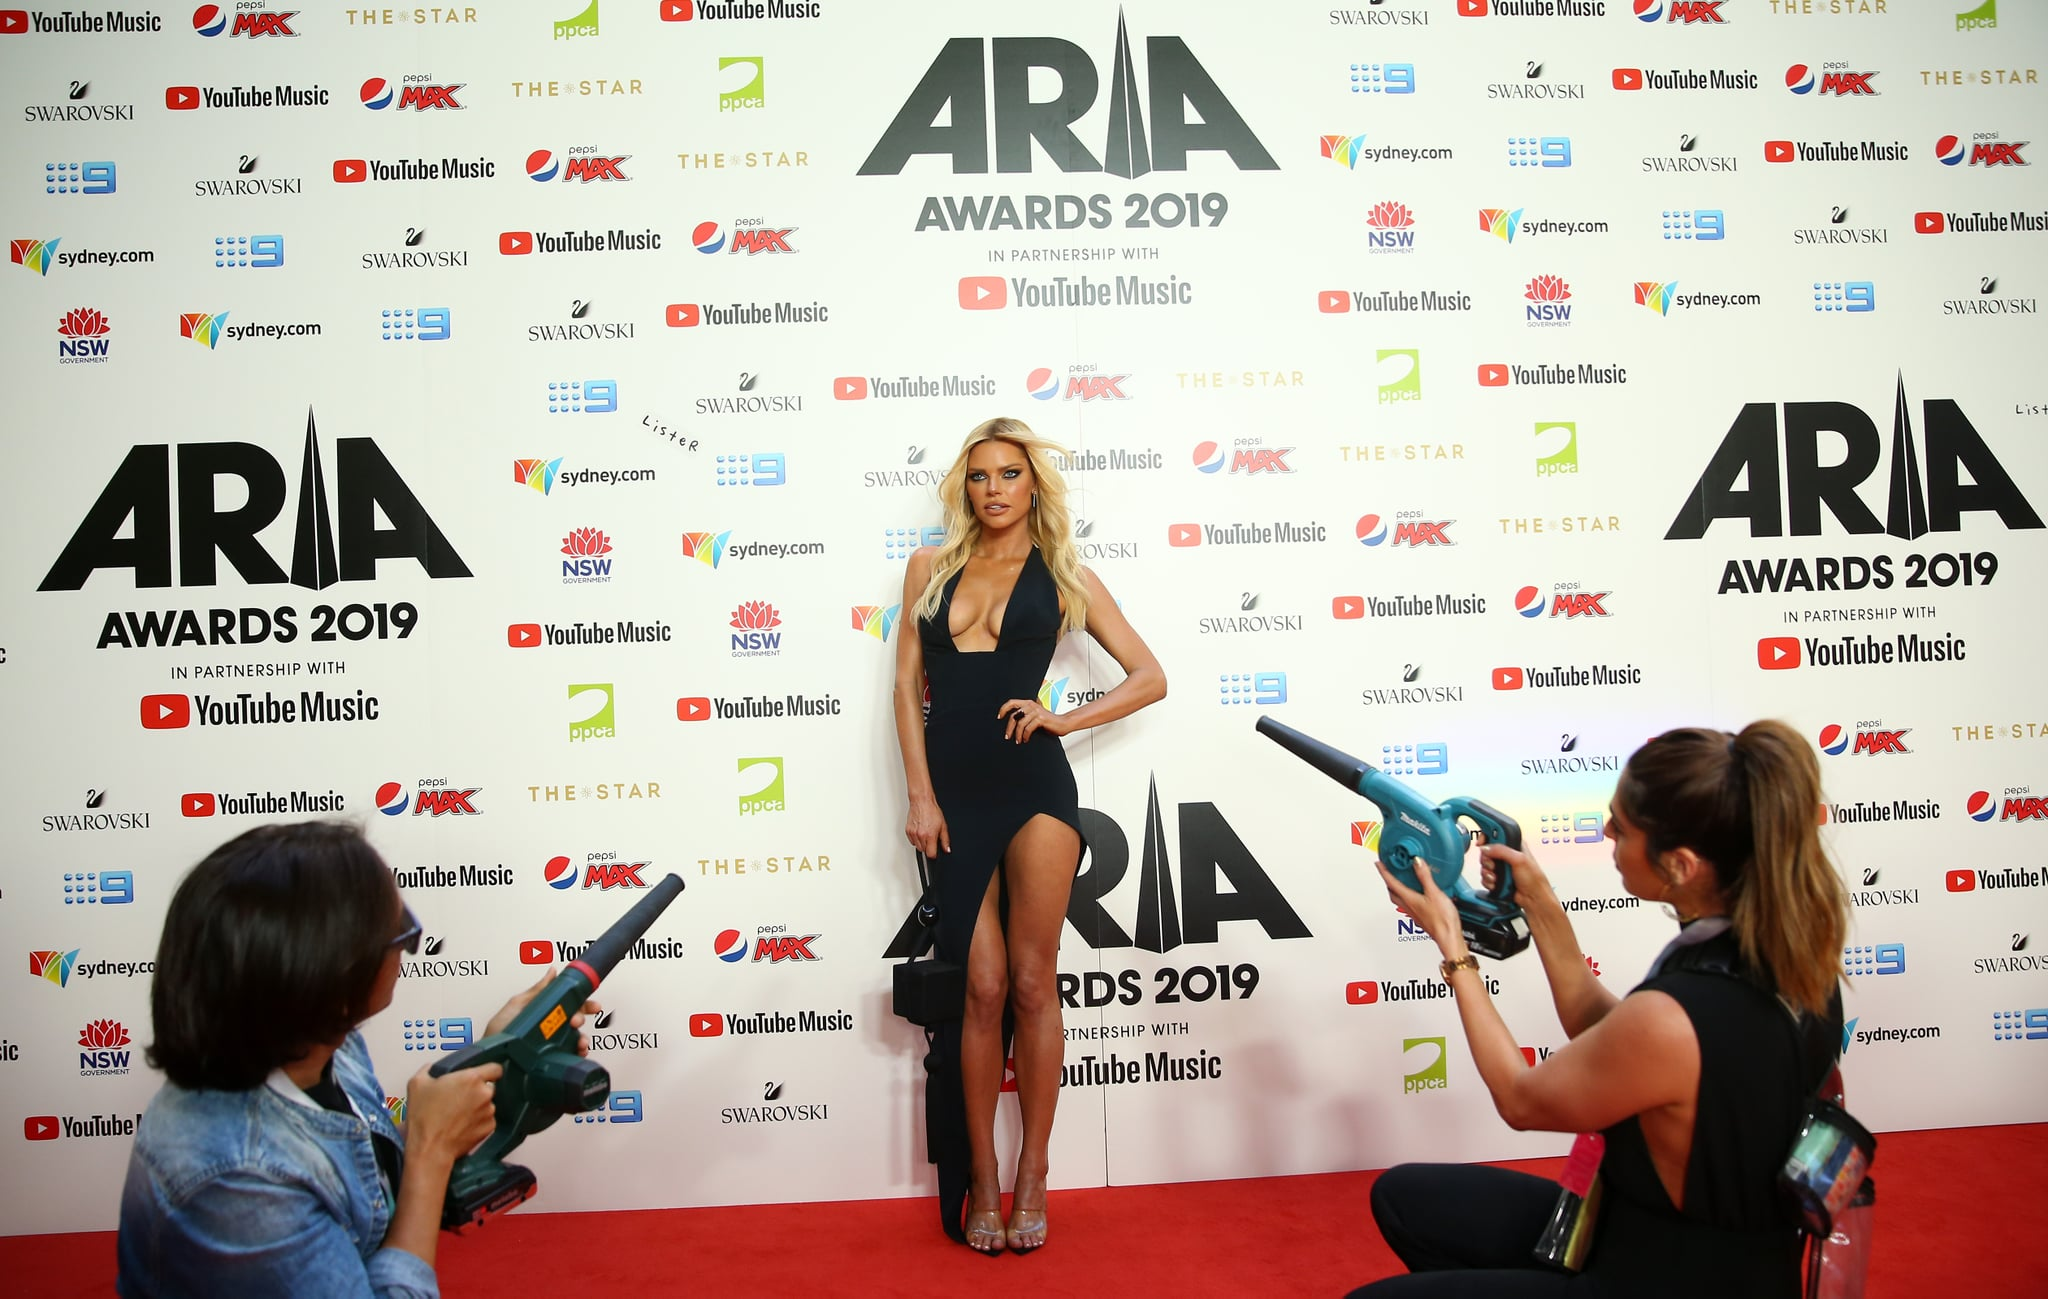 SYDNEY, AUSTRALIA - NOVEMBER 27: Sophie Monk arrives for the 33rd Annual ARIA Awards 2019 at The Star on November 27, 2019 in Sydney, Australia. (Photo by Don Arnold/WireImage)